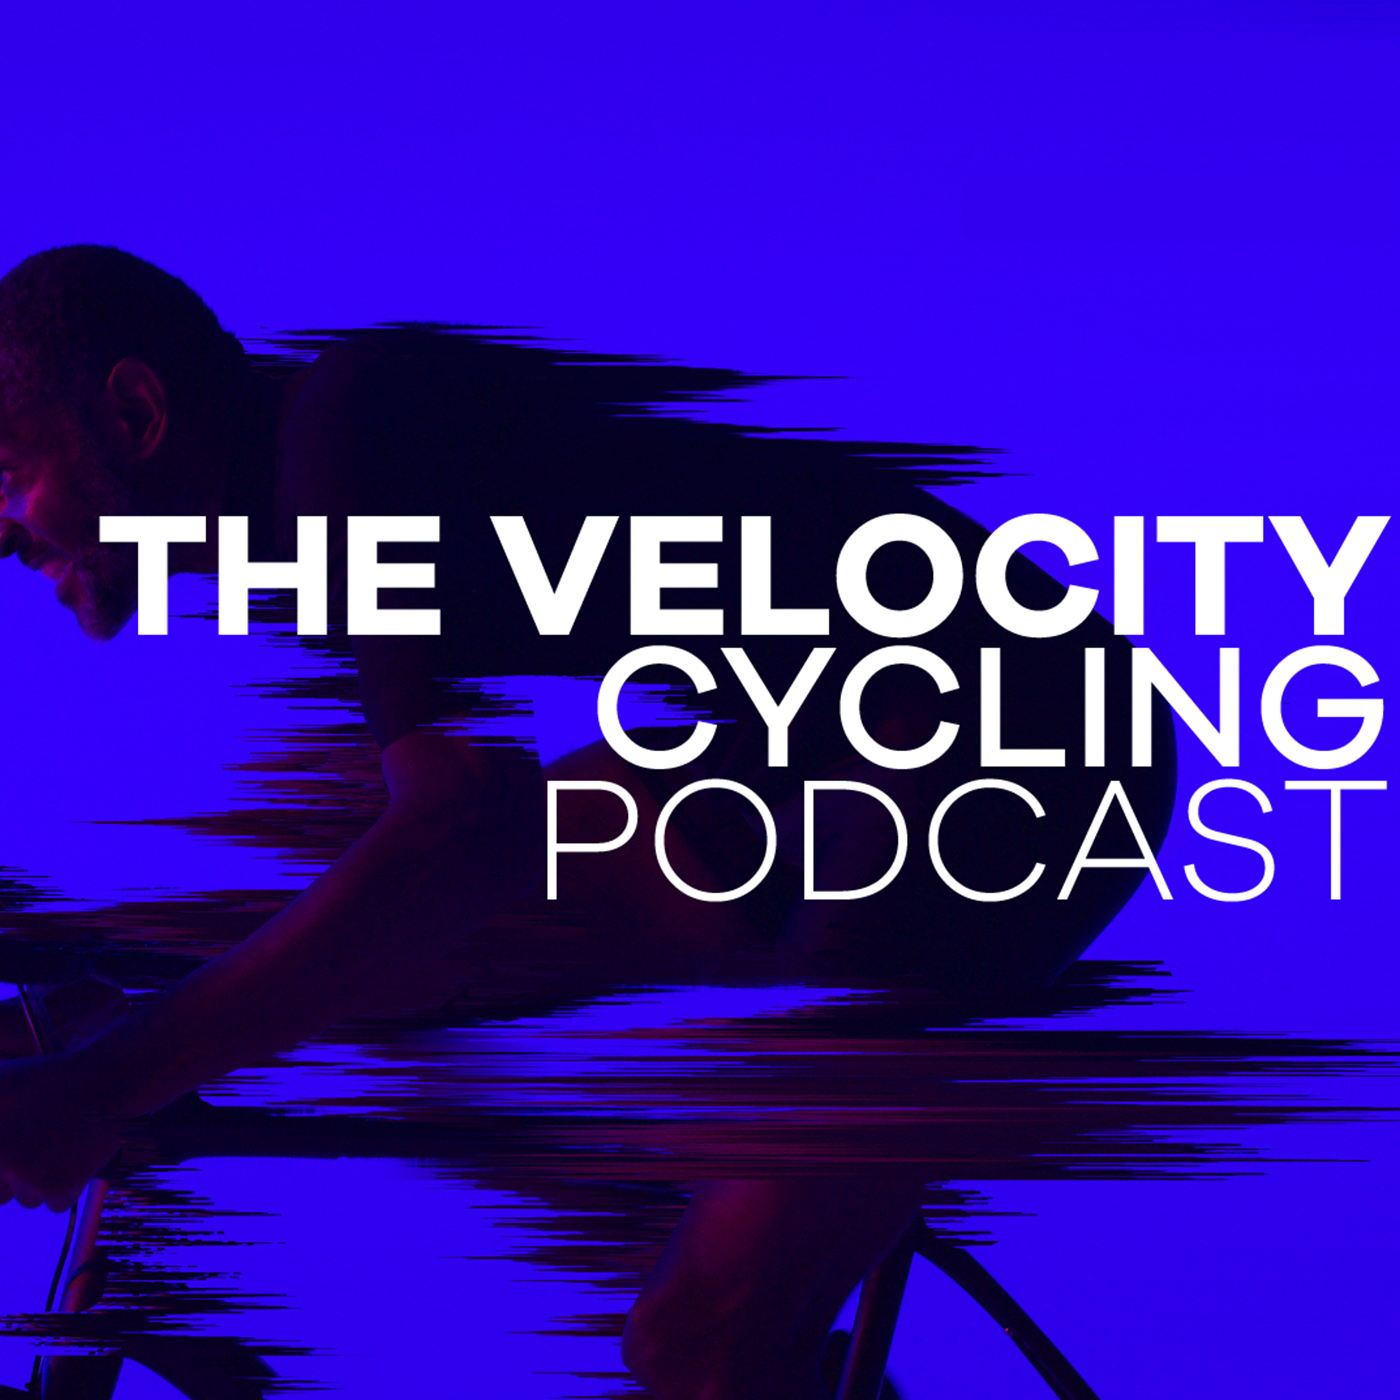 Artwork for podcast The Velocity Cycling Podcast